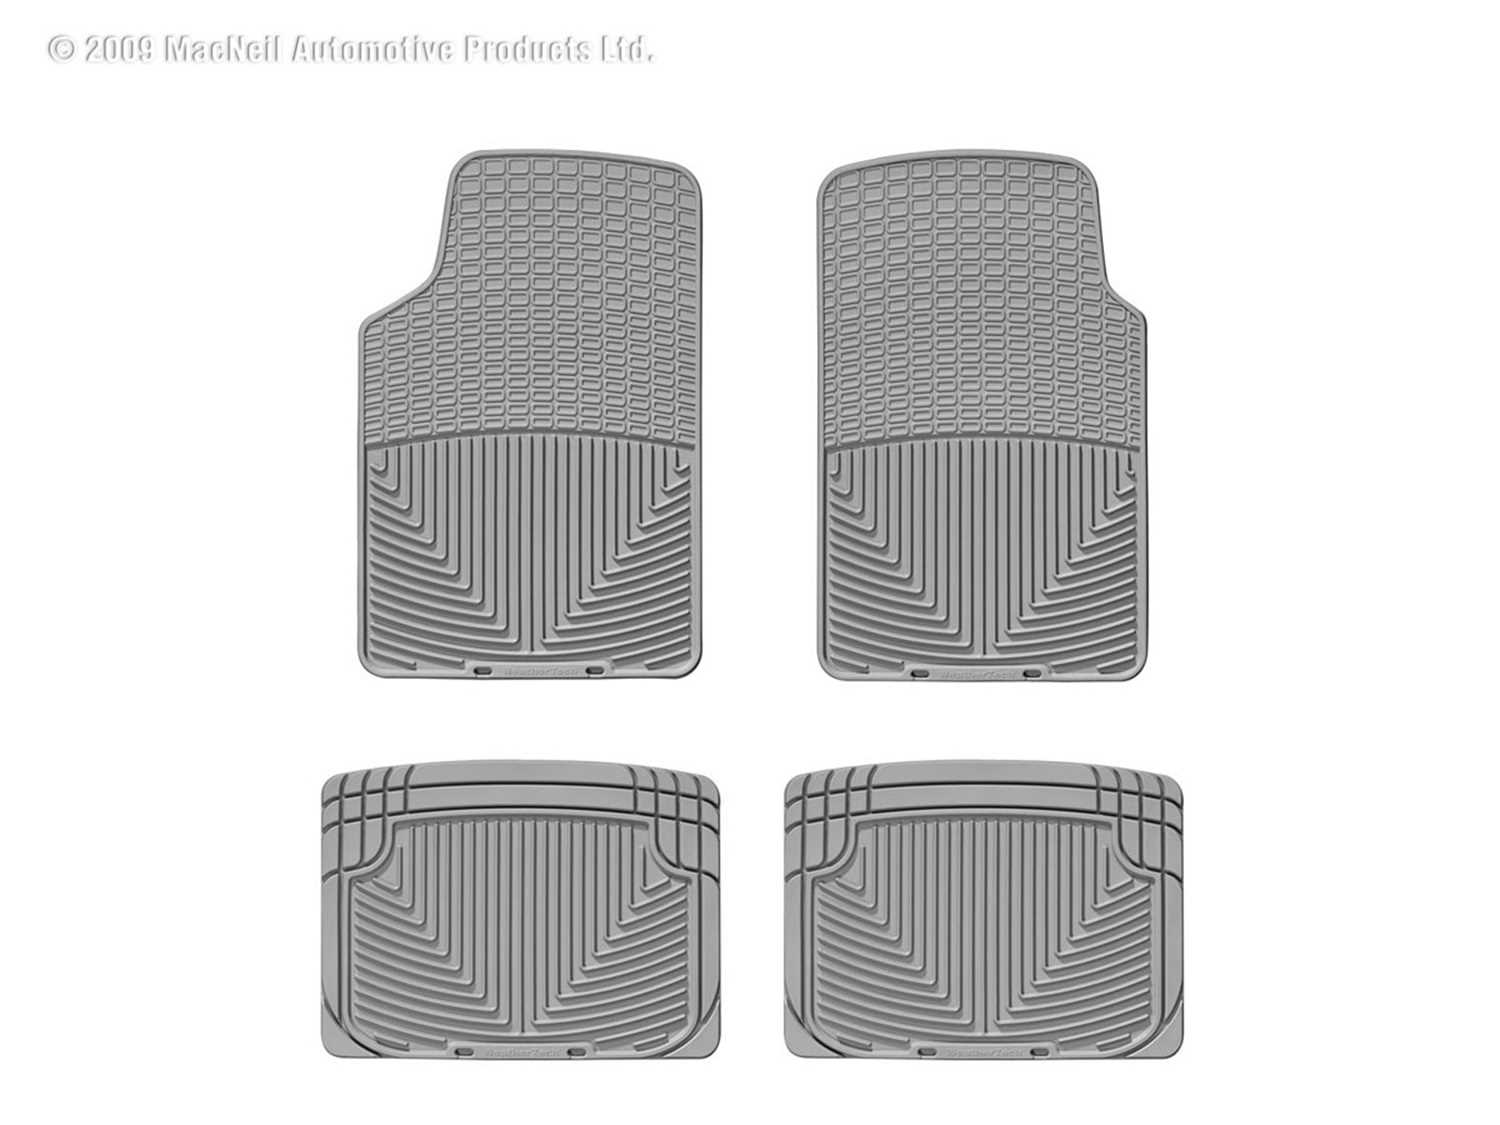 W3GR-W20GR WeatherTech All Weather Floor Mats